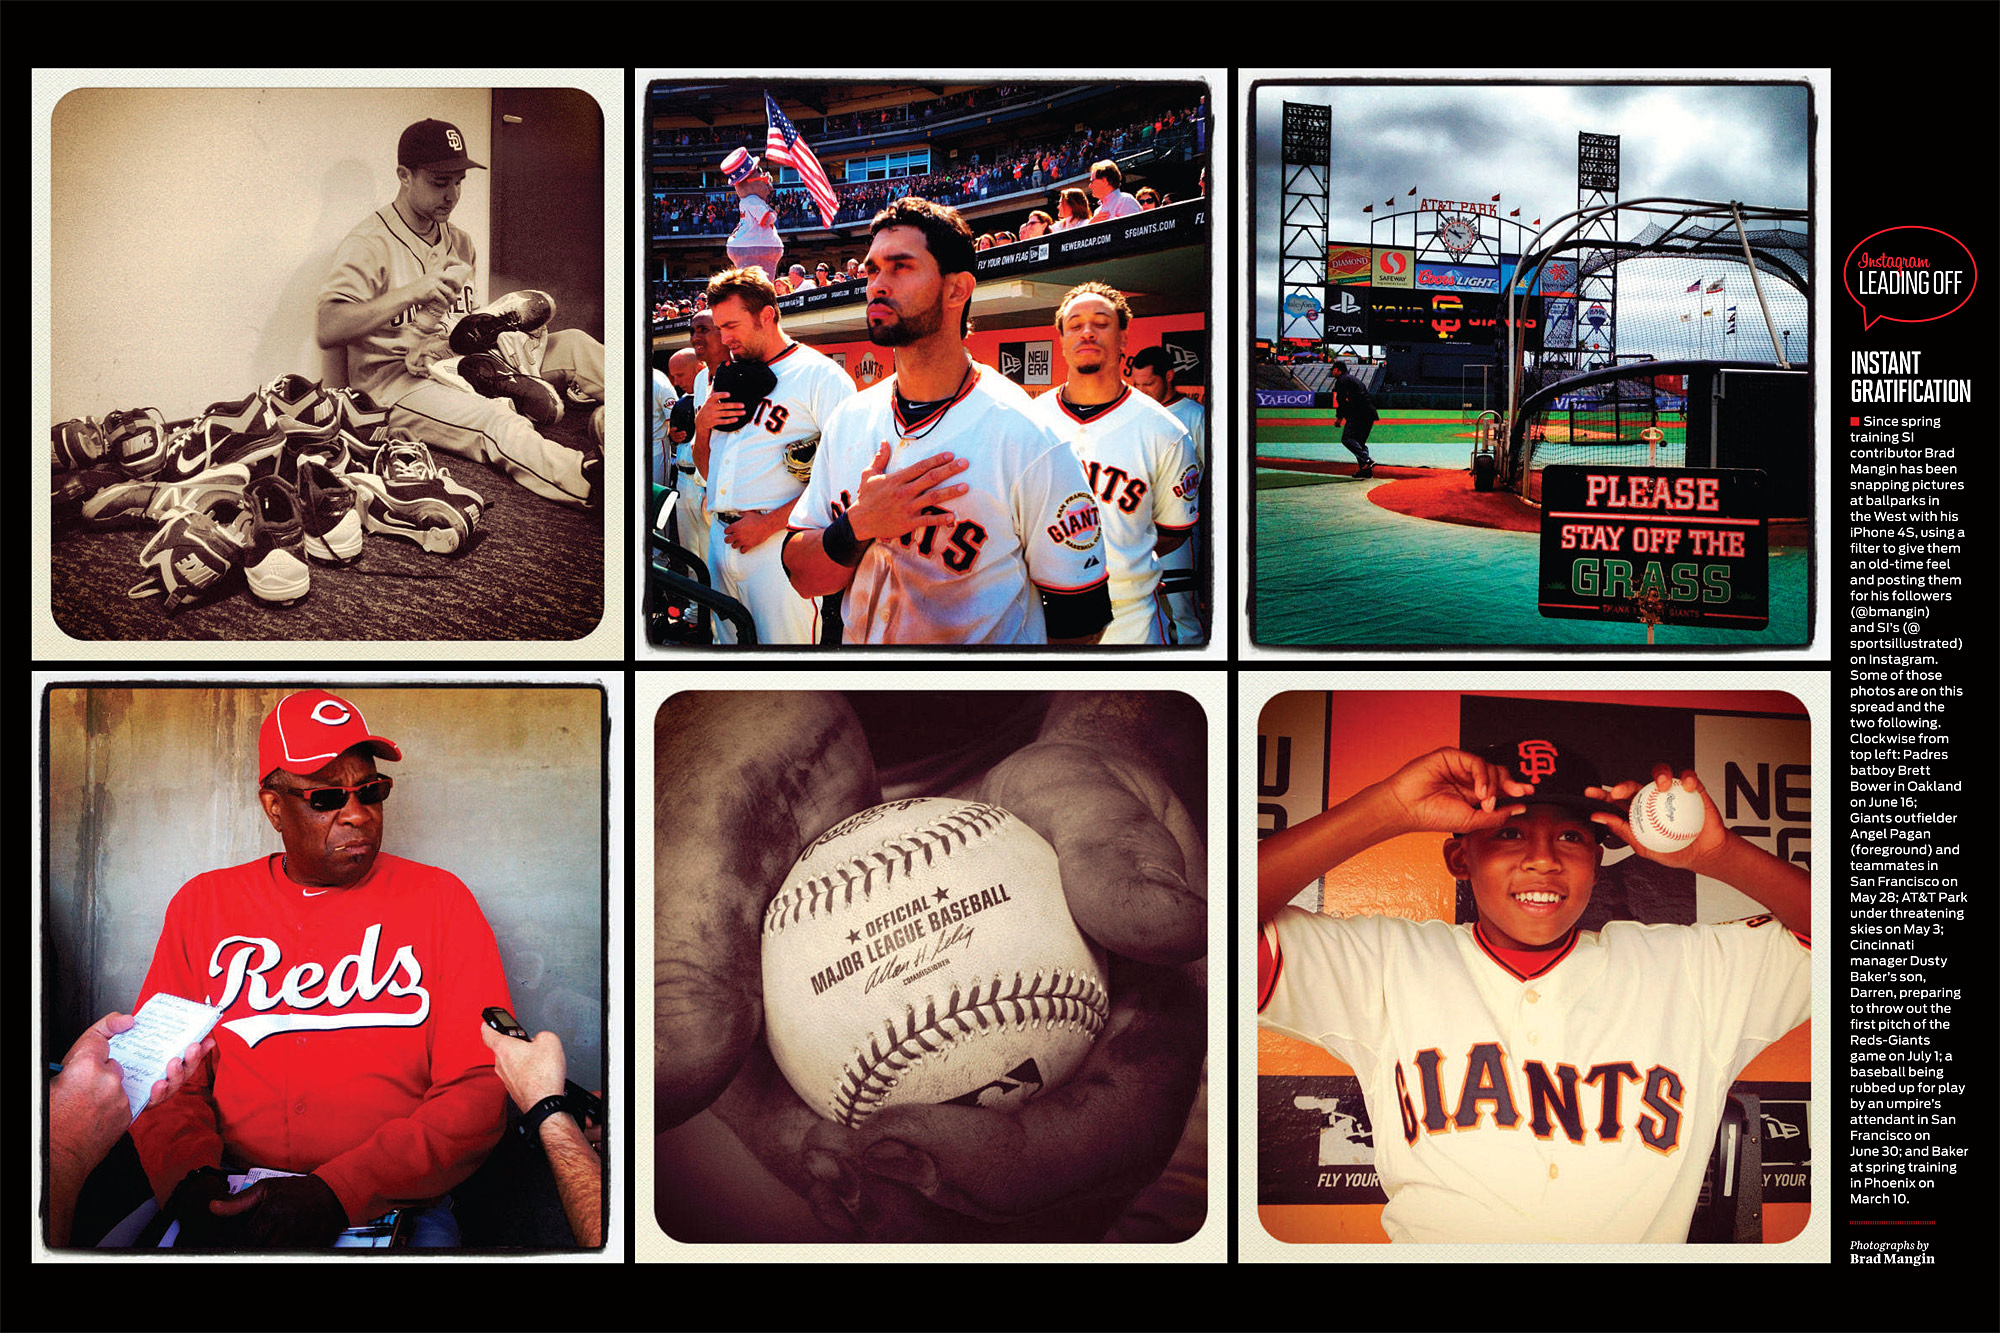 CLICK ON PICTURE FOR BIGGER IMAGE: This spread of baseball iPhone Instagrams was published as a Leading Off double truck in Sports Ilustrated this week. (Photos by Brad Mangin)